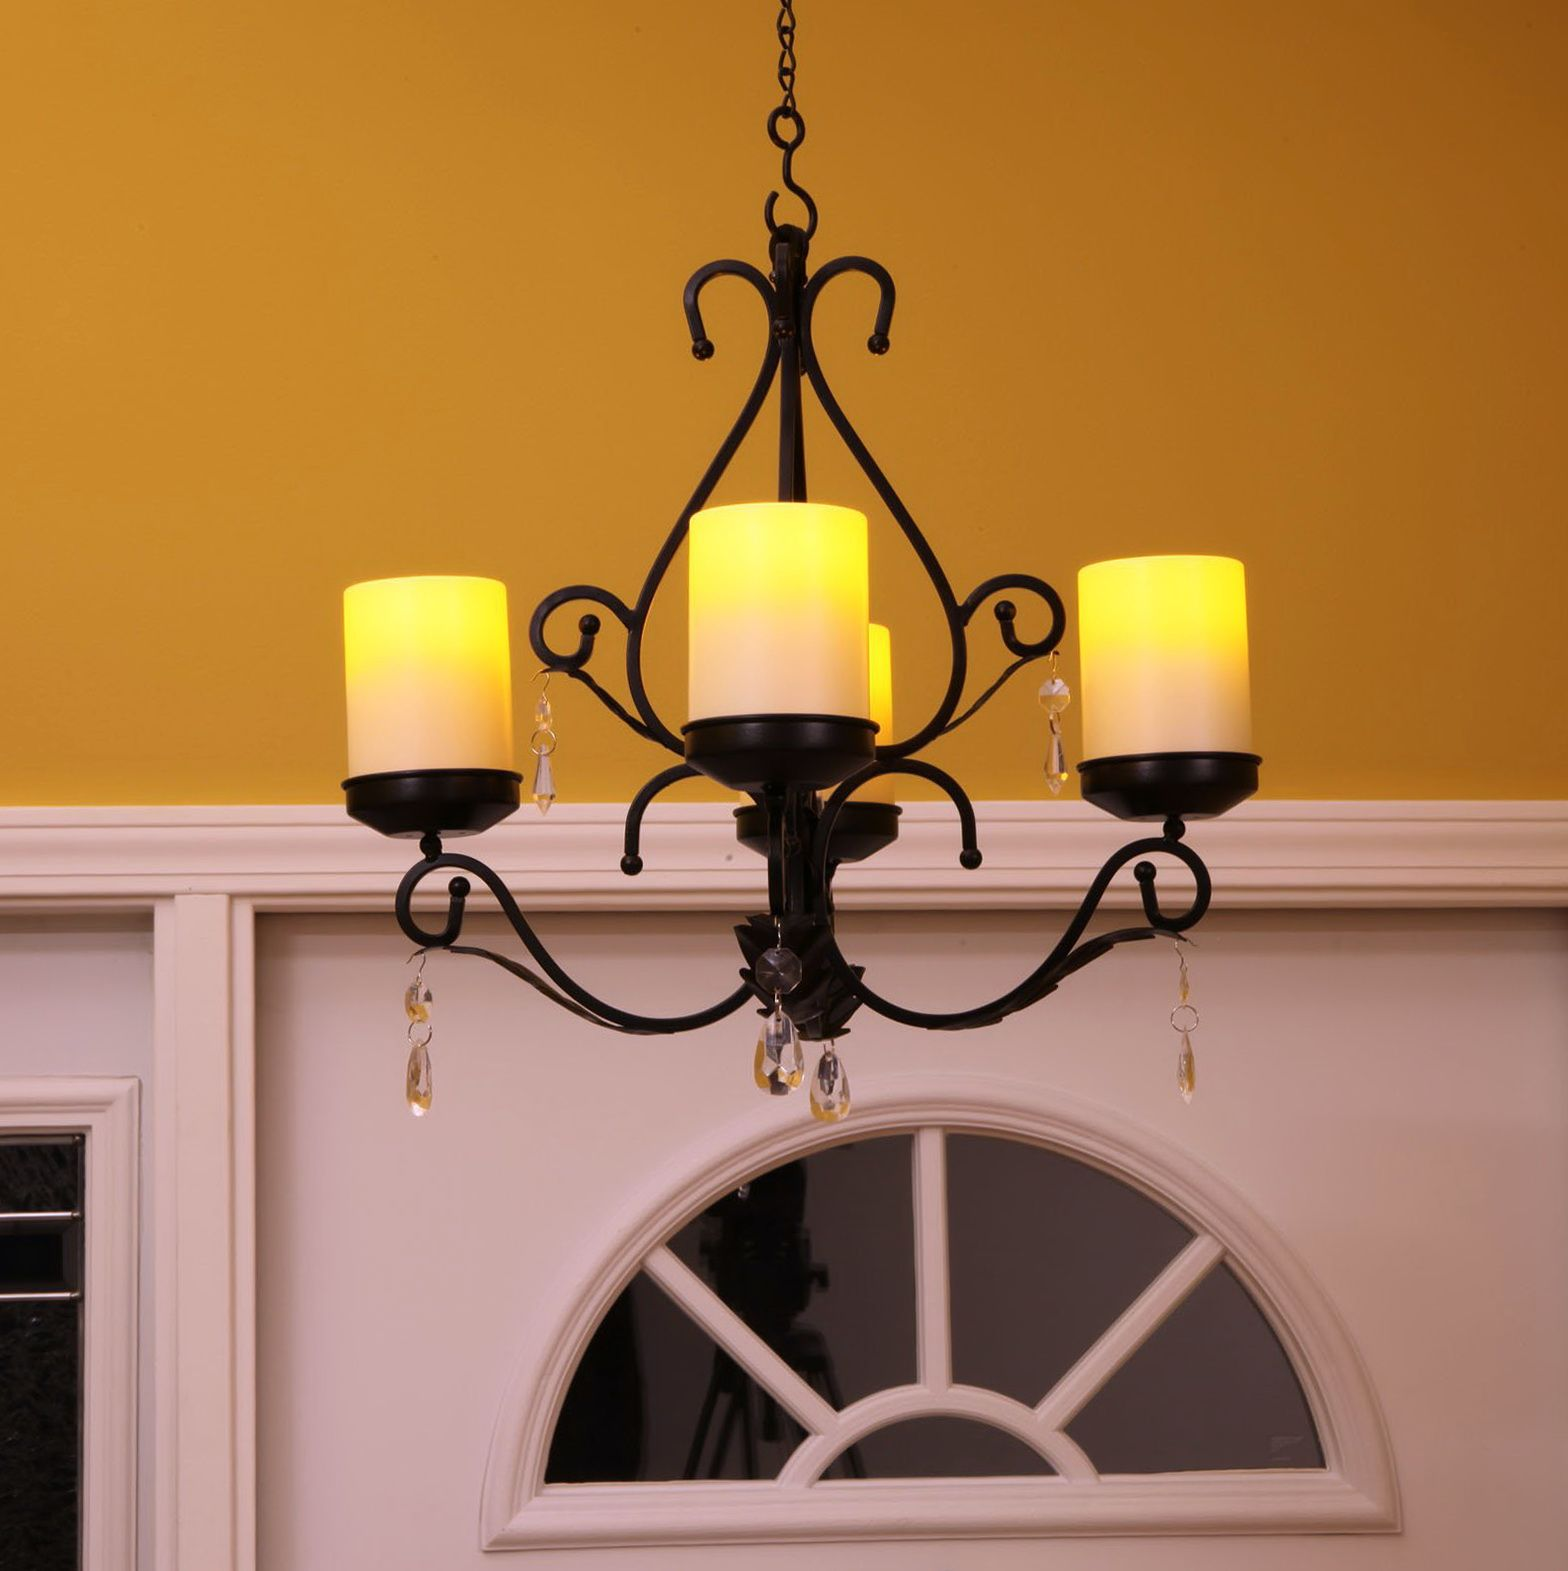 Outdoor Candle Chandelier Non Electric | Outdoor candle ... on Non Electric Wall Sconce Lights id=37985